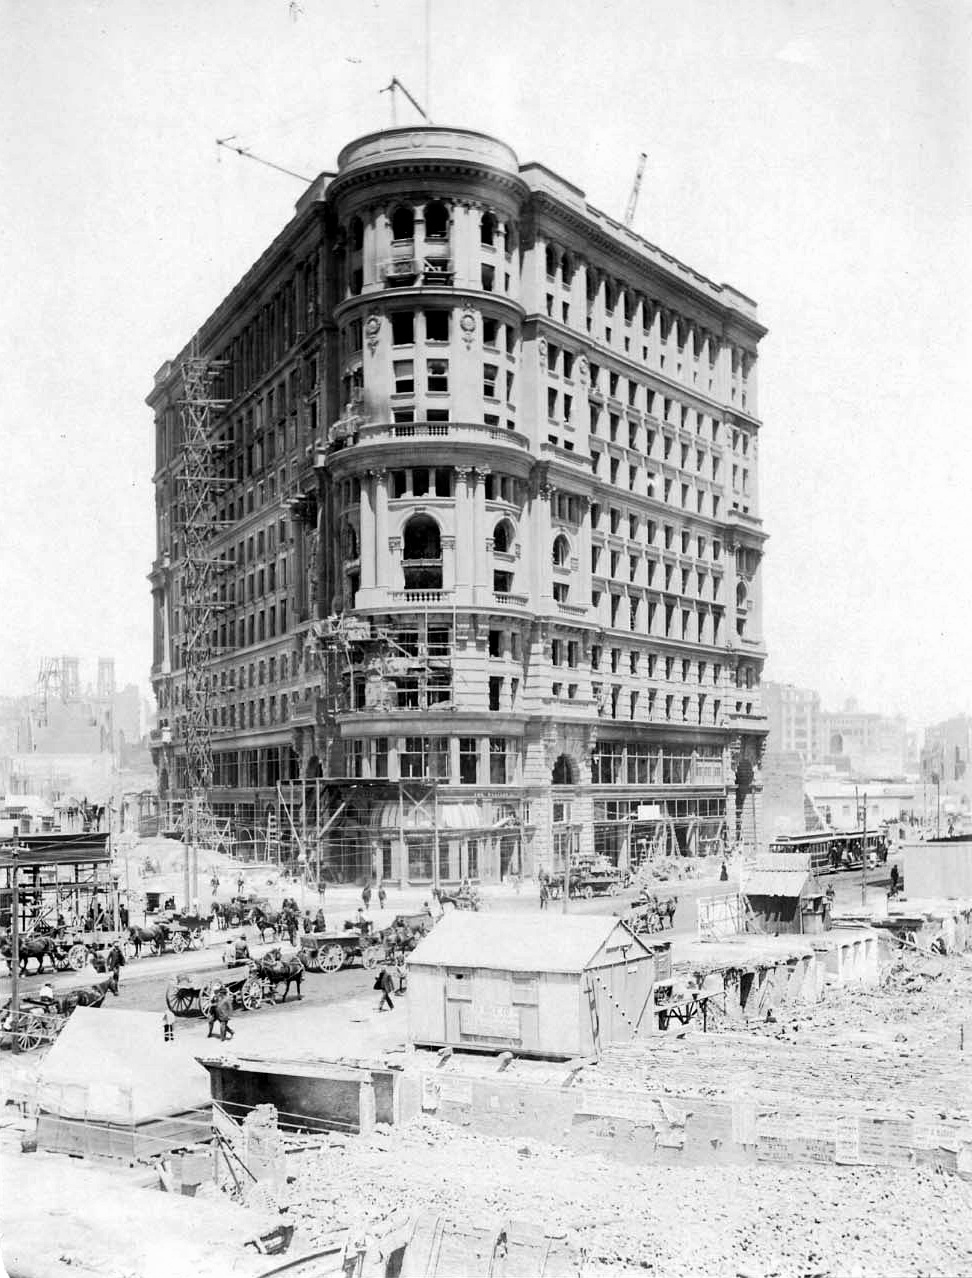 FloodBuilding1906InReconstruction